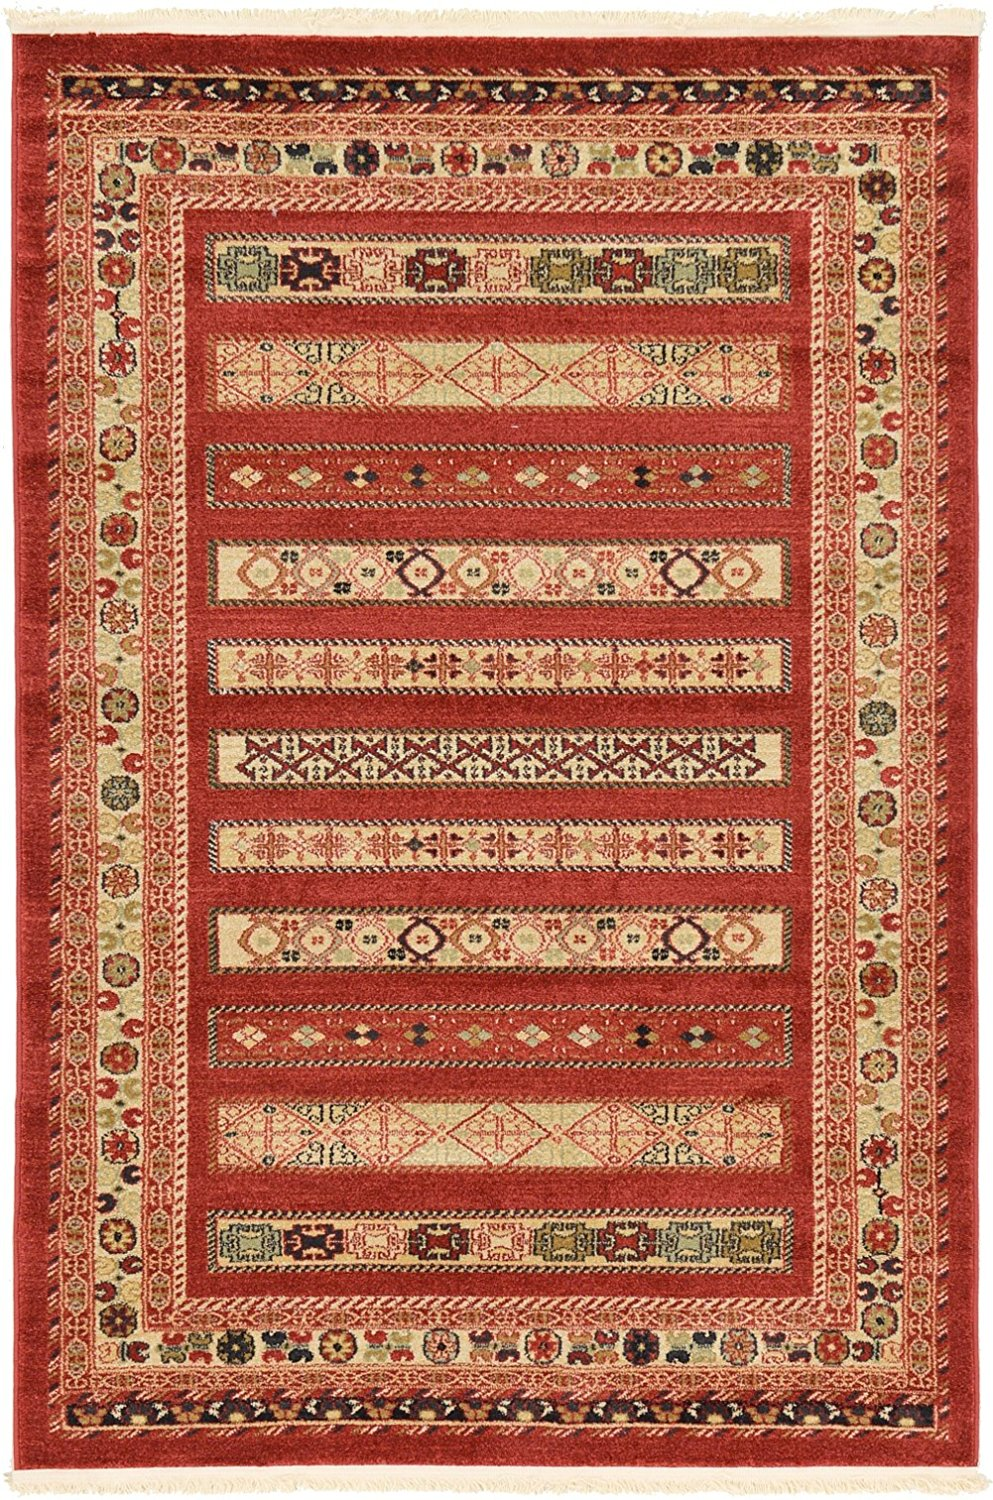 A2Z Rug 4-Feed-by-6-Feed Gabbeh Collection Area Rug - Rust Red Modern & Traditional rugs for living room - rugs for dining room & bedroom - Floor Carpet